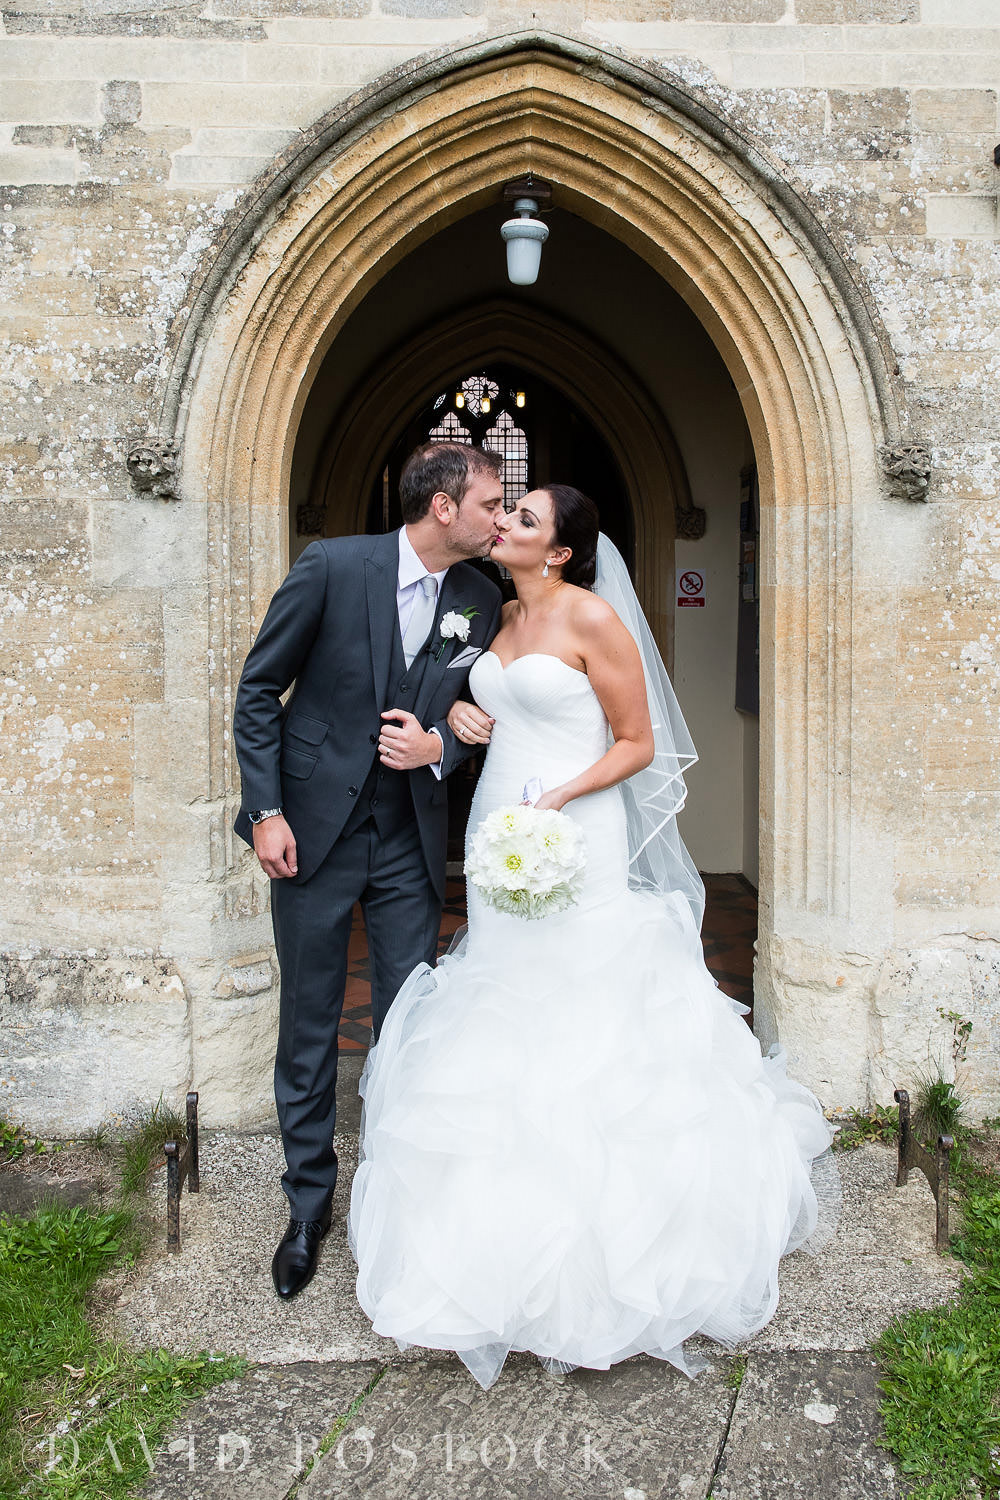 Oxfordshire church wedding kiss photo